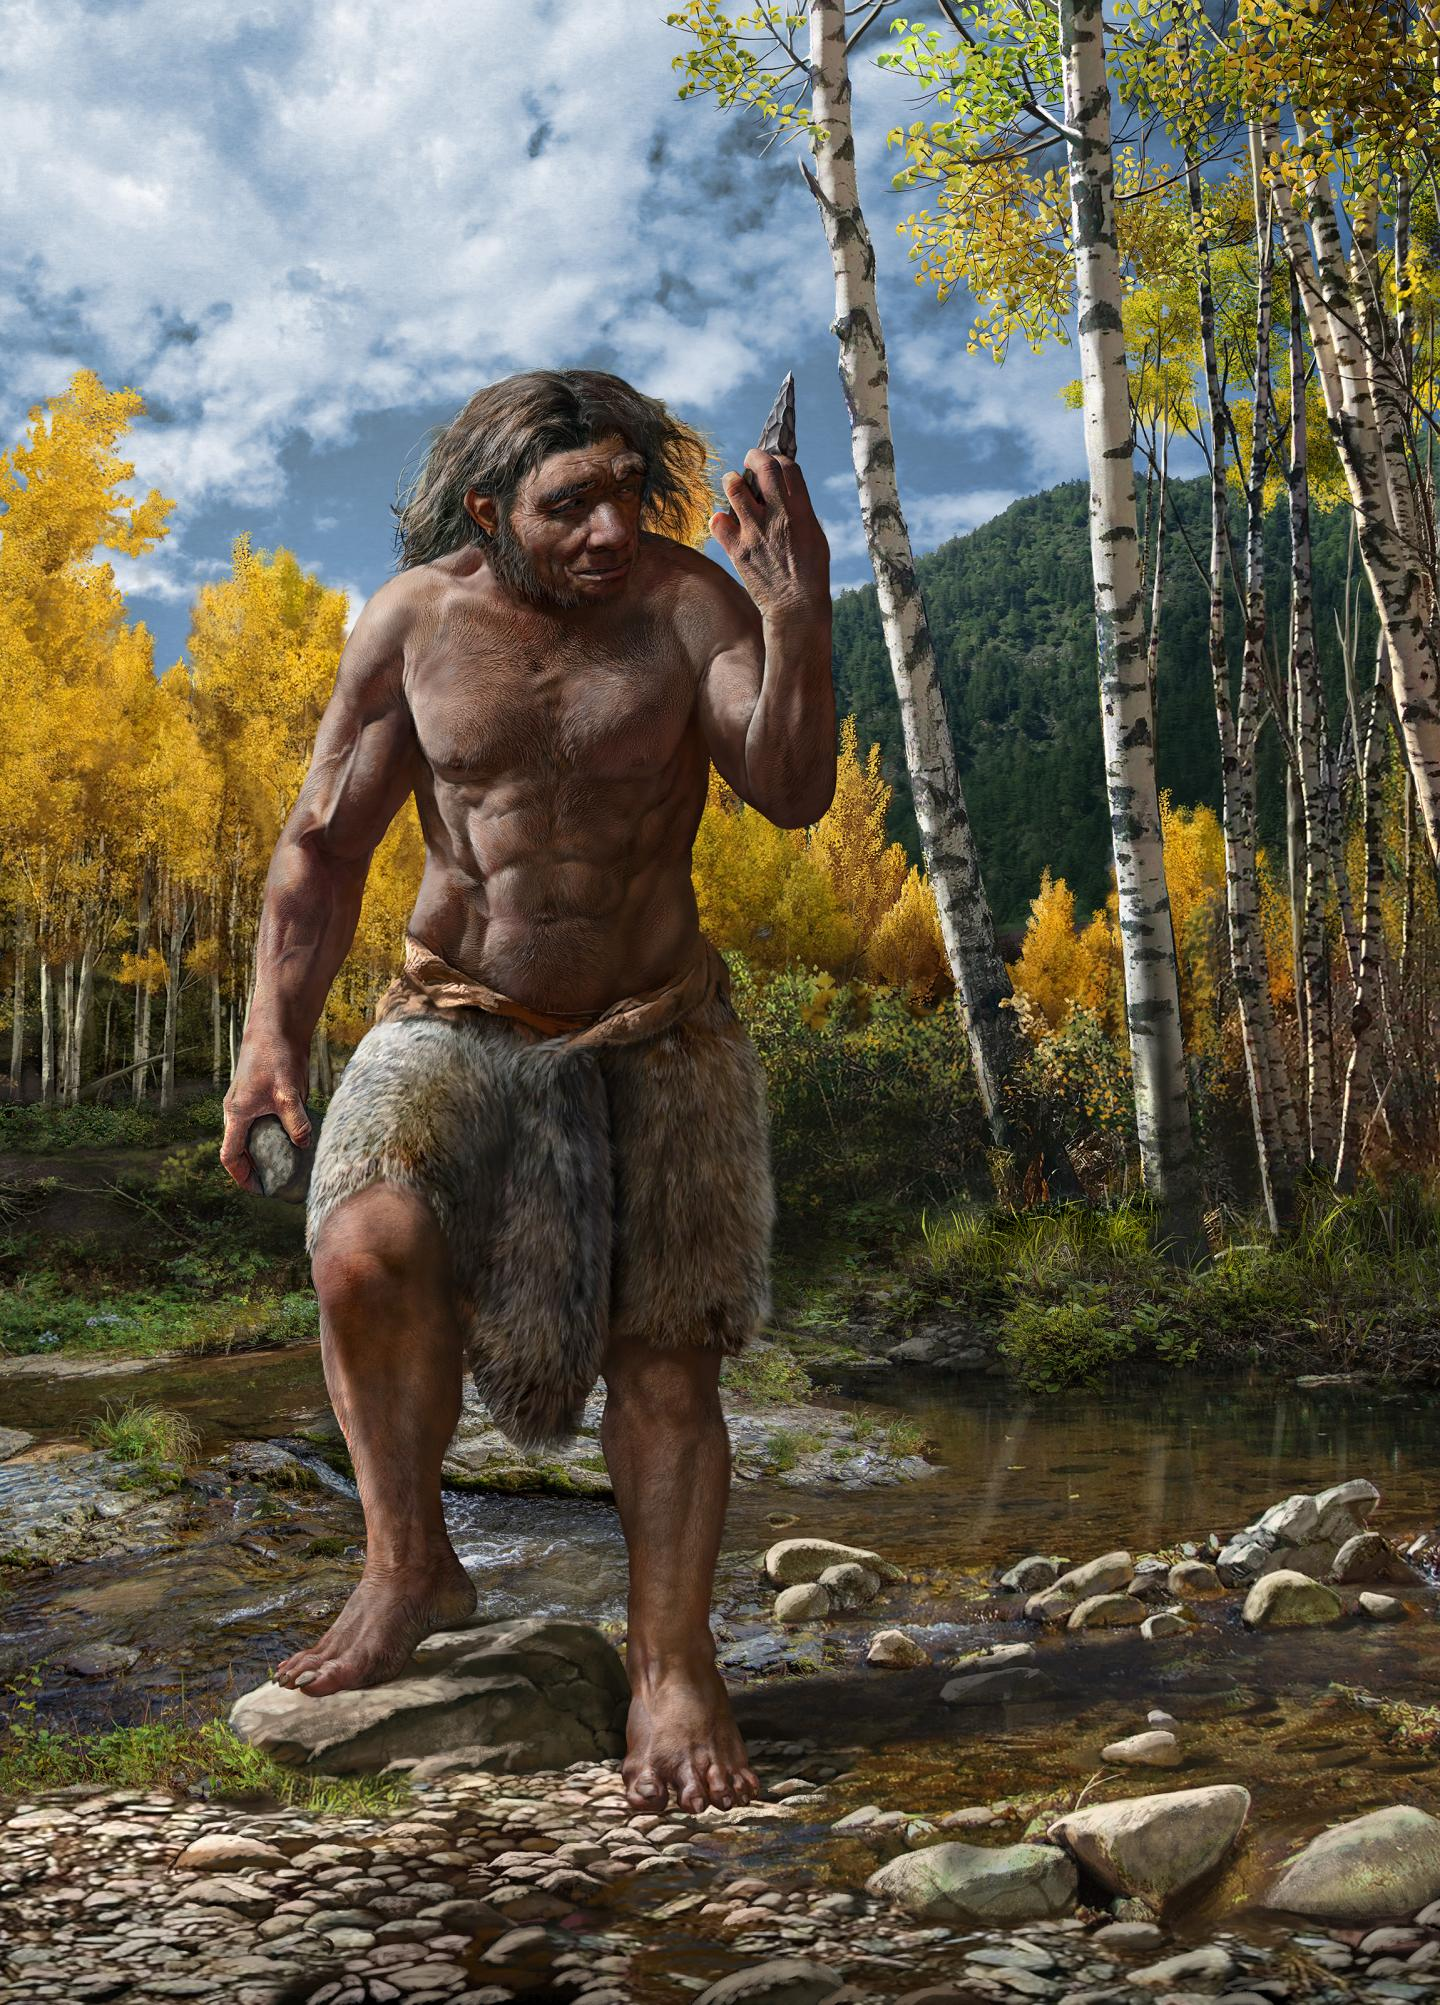 Sturdy barefooted 'dragon man' with fur loincloth, holding a stone tool, near birch trees.